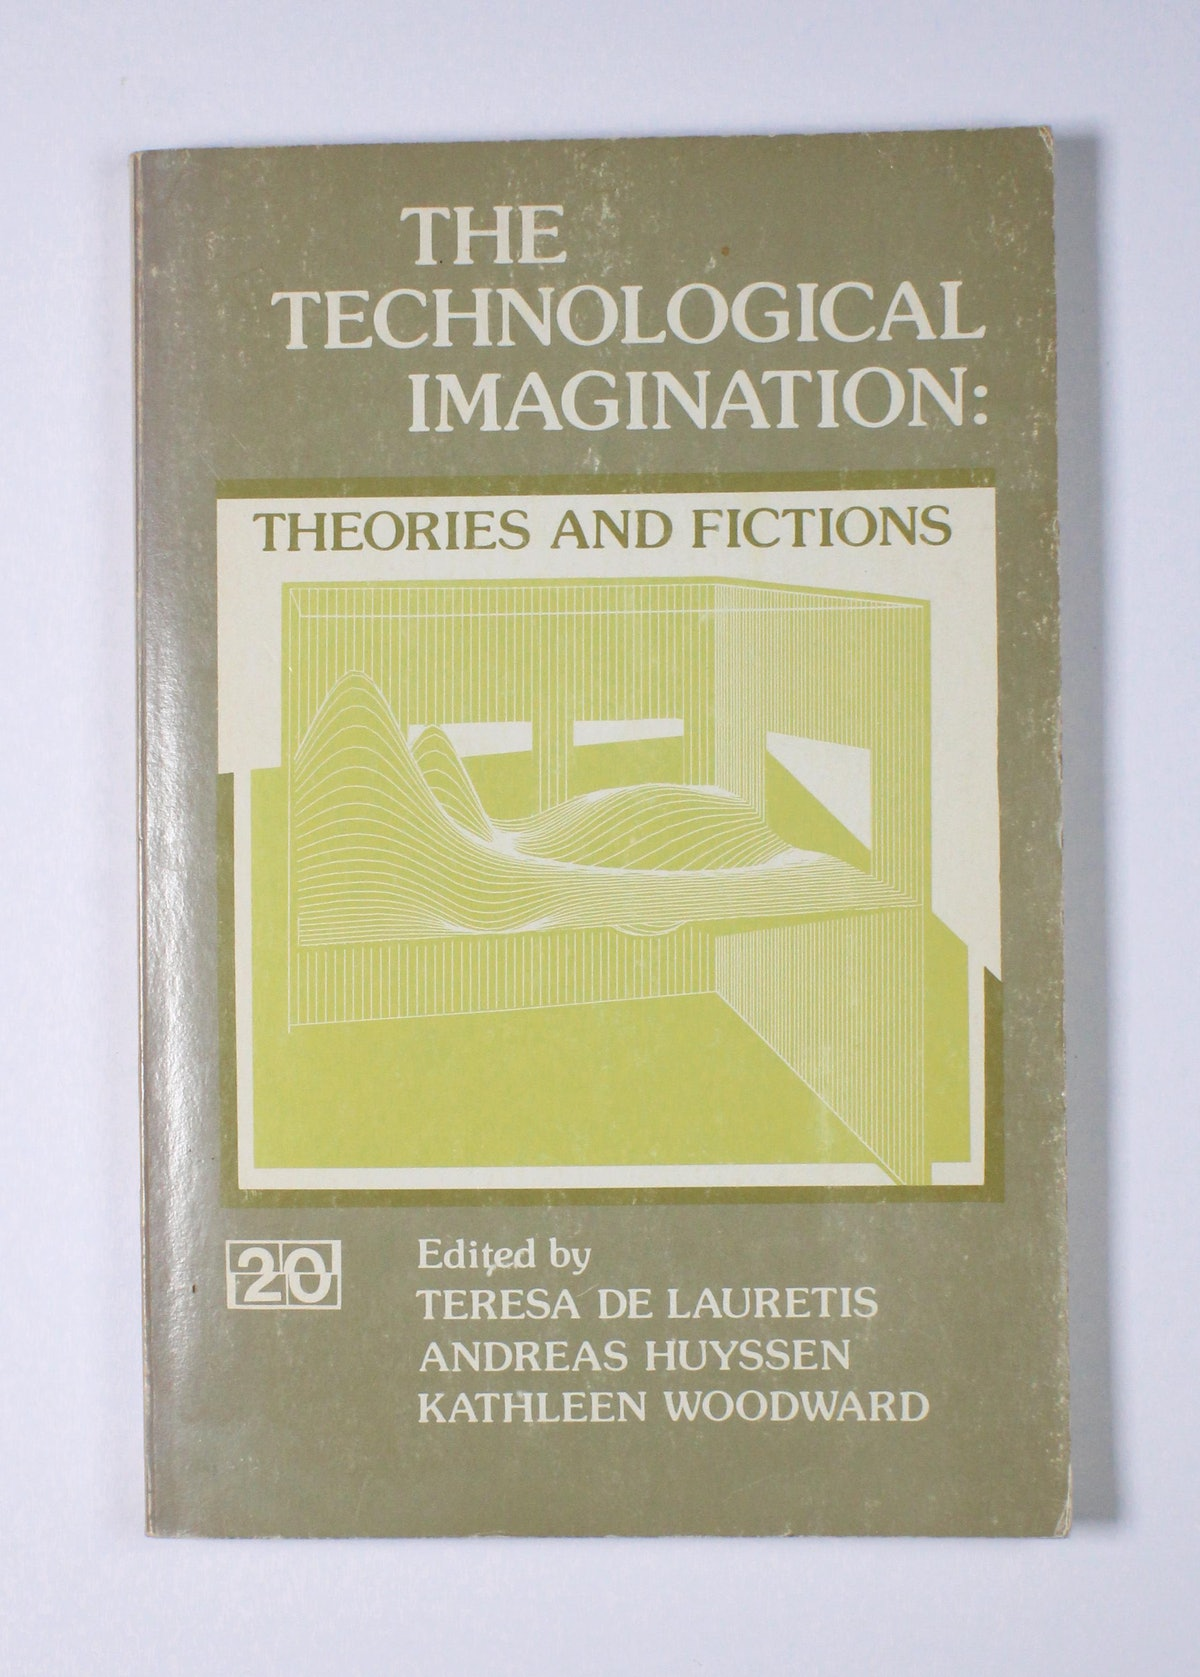 The Technological Imagination: Theories and Fictions